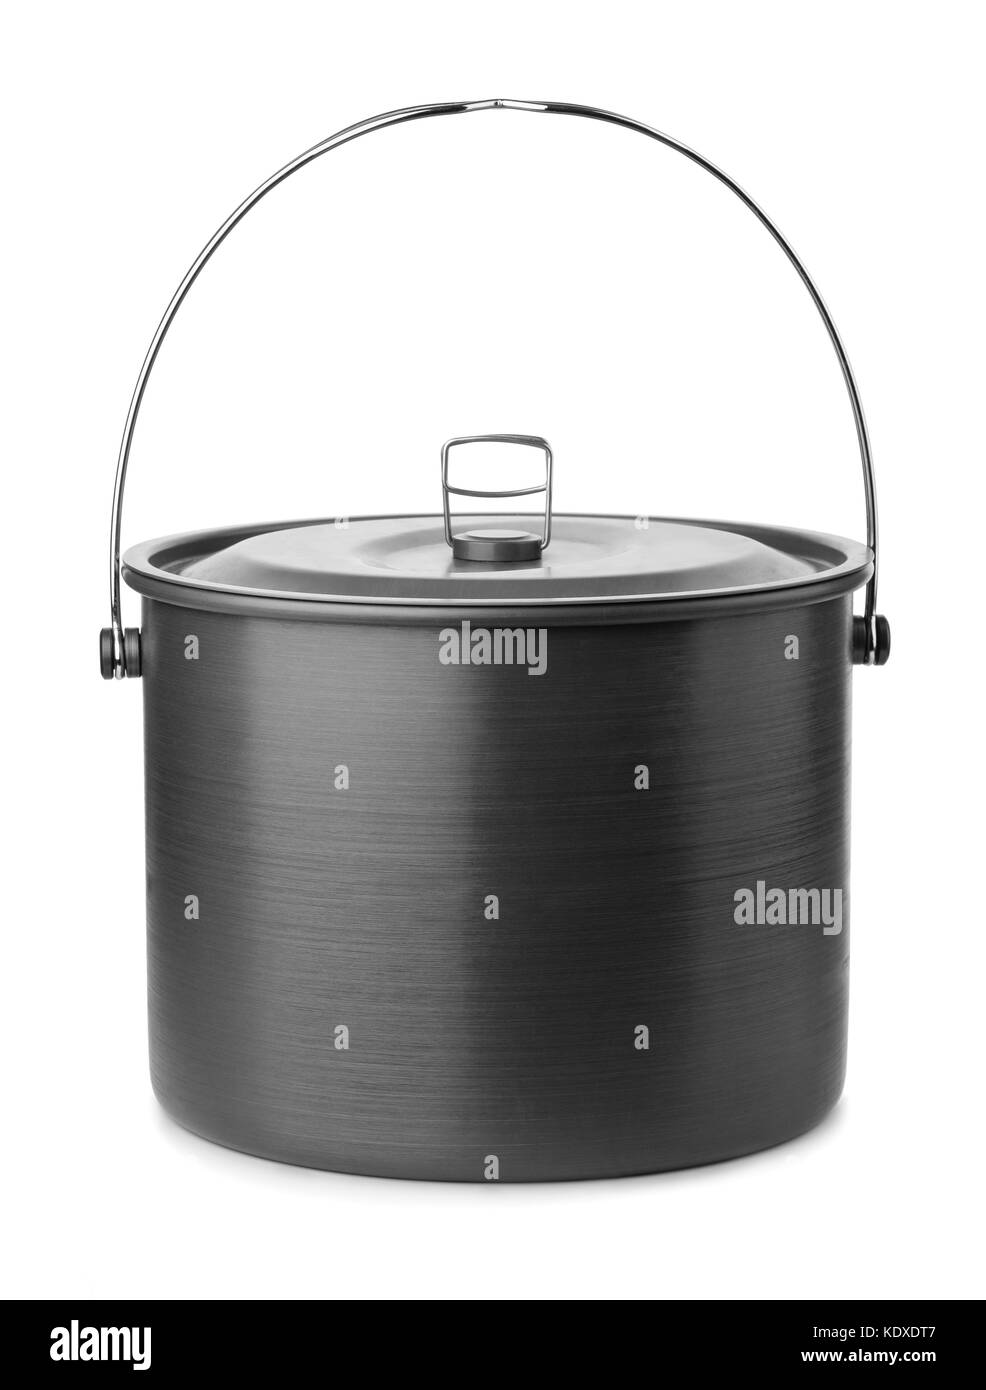 Camping cooking pot isolated on white - Stock Image